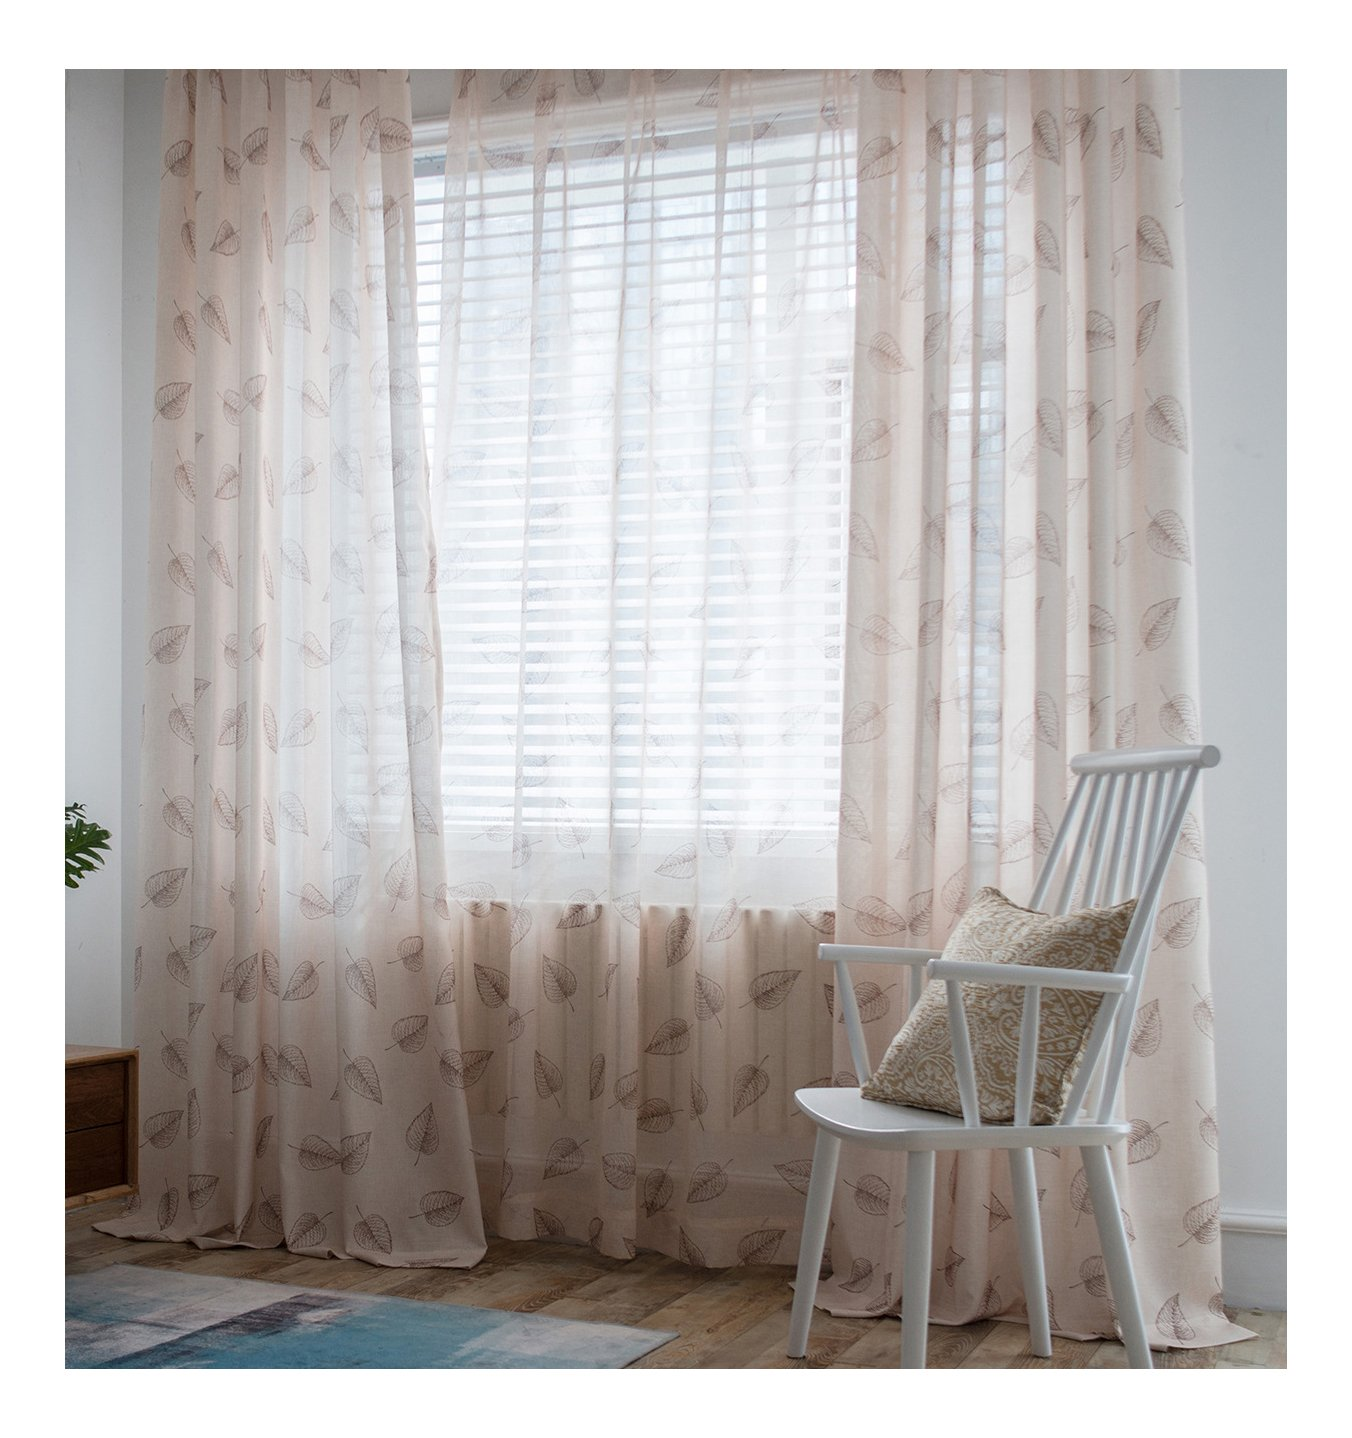 ASide BSide Sawtooth Leaf Printed Rod Pockets Pure Type Sheer Curtains Home Treatment Voile Panels For Houseroom Kitchen and Child Room (1 Panel, W 52 x L 63 inch, Light coffee)